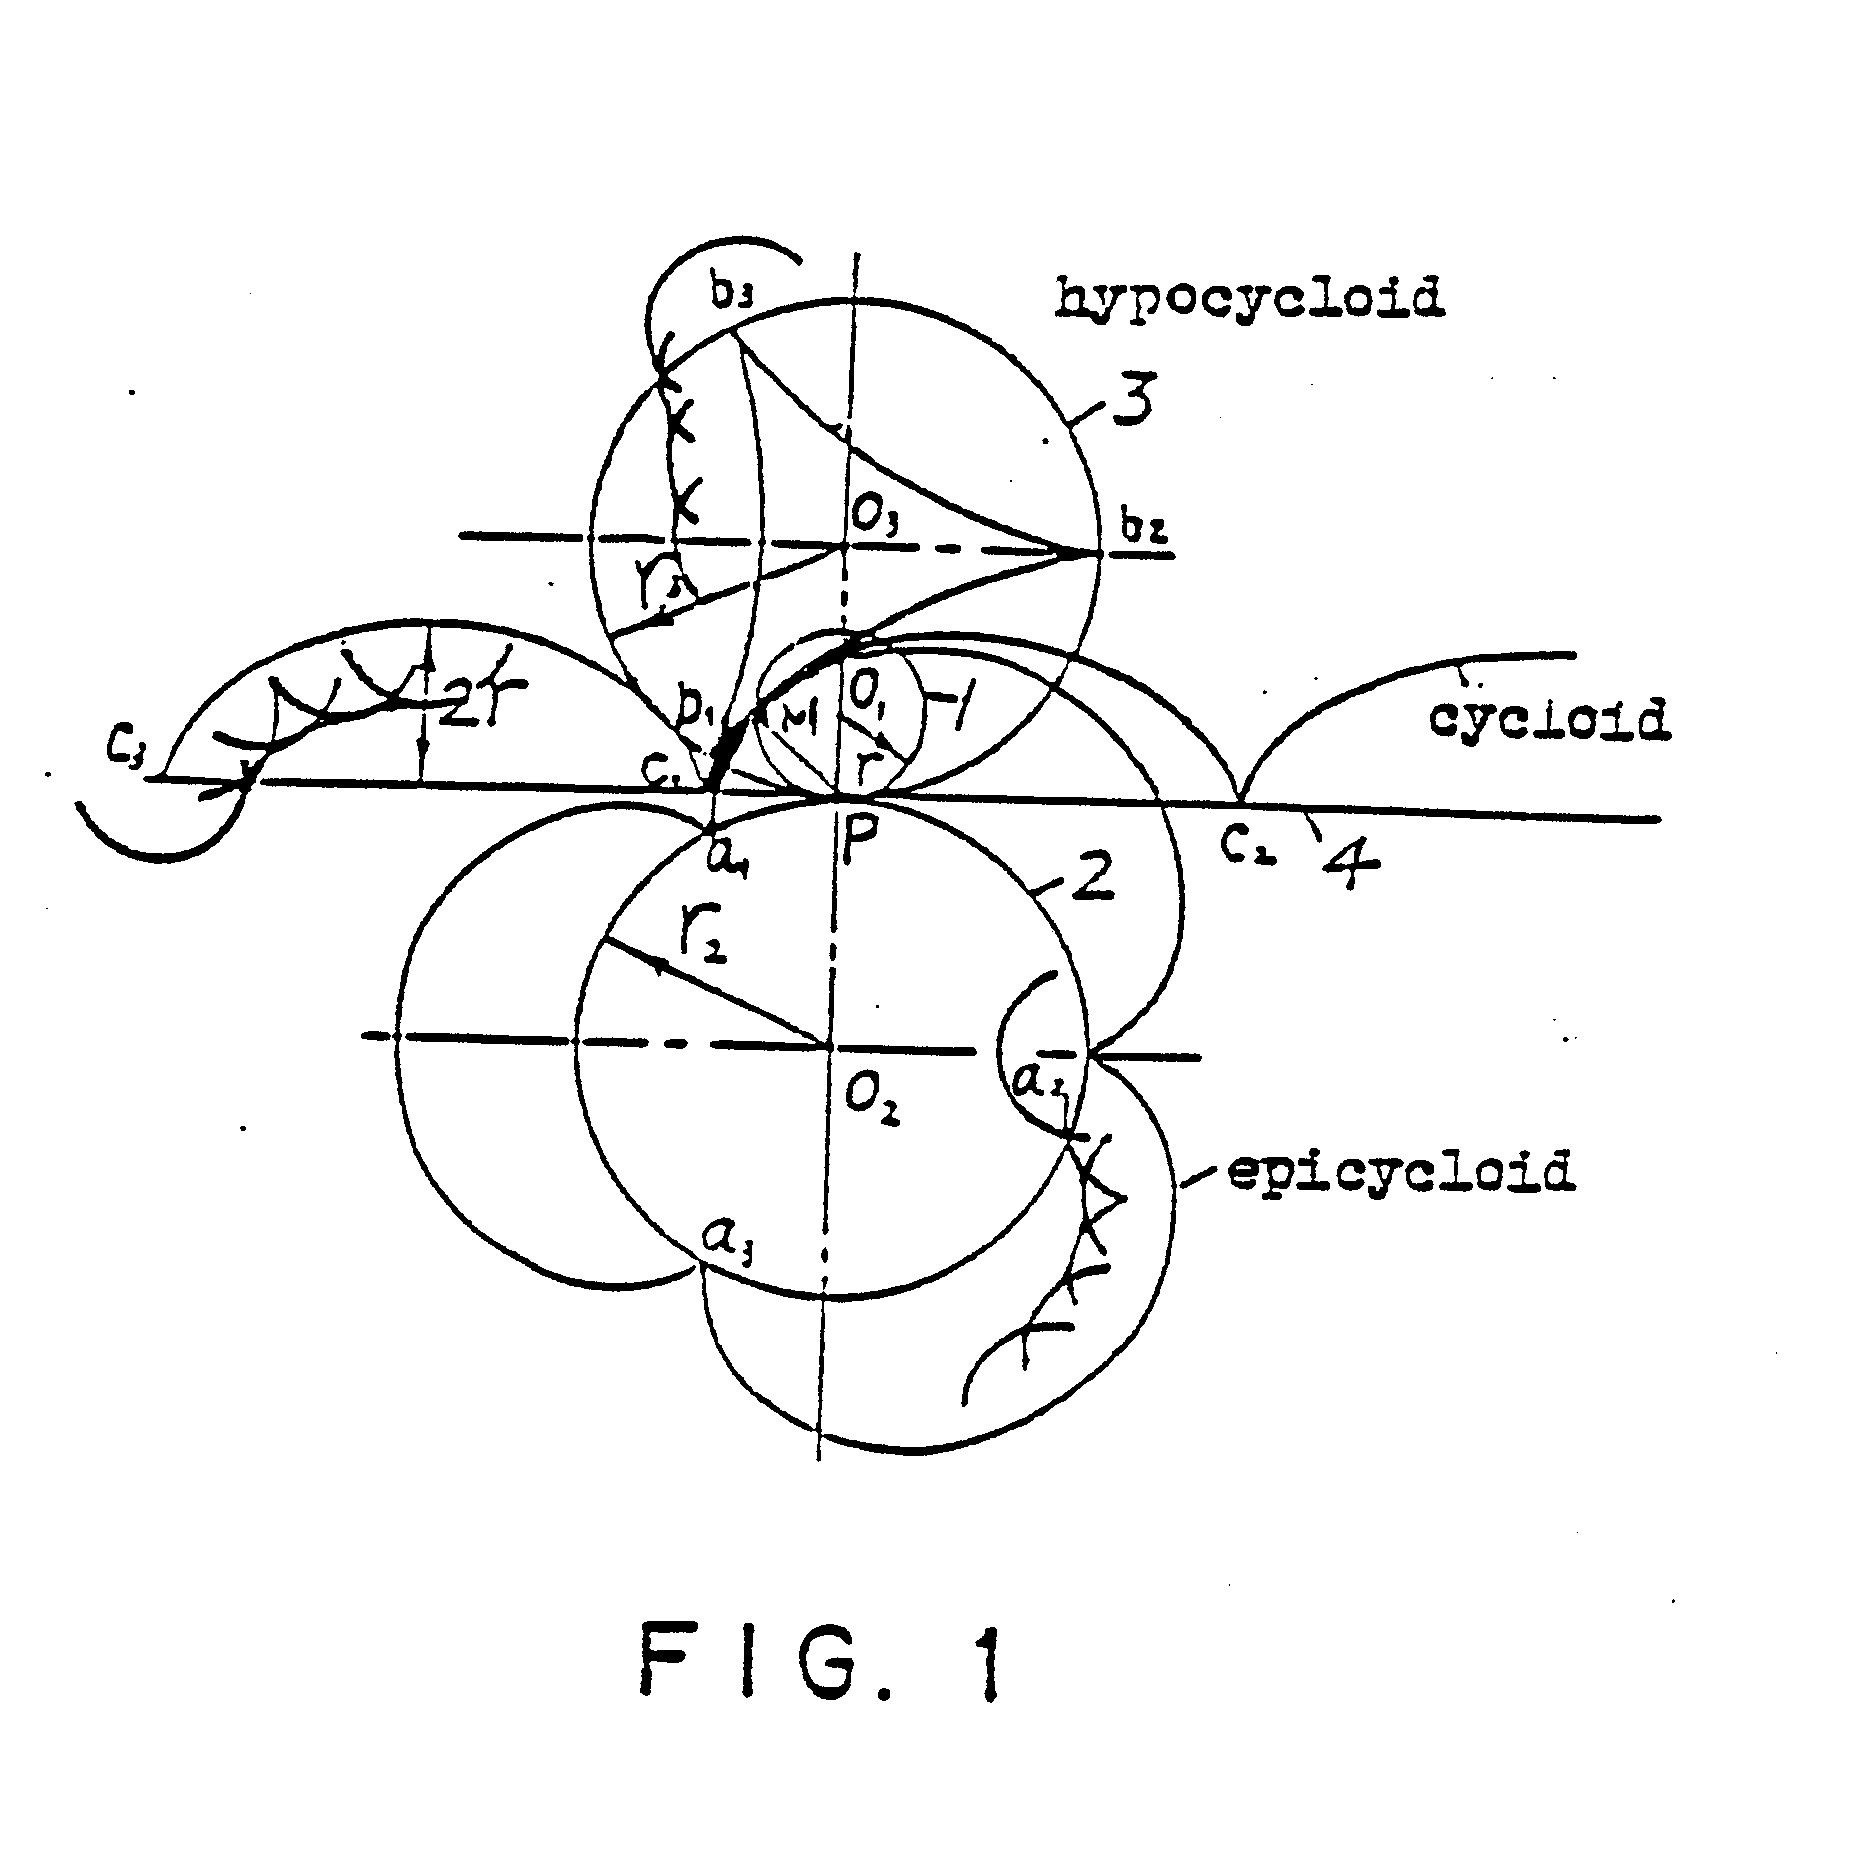 Cycloidal equidistant curved gear transmission mechanism and